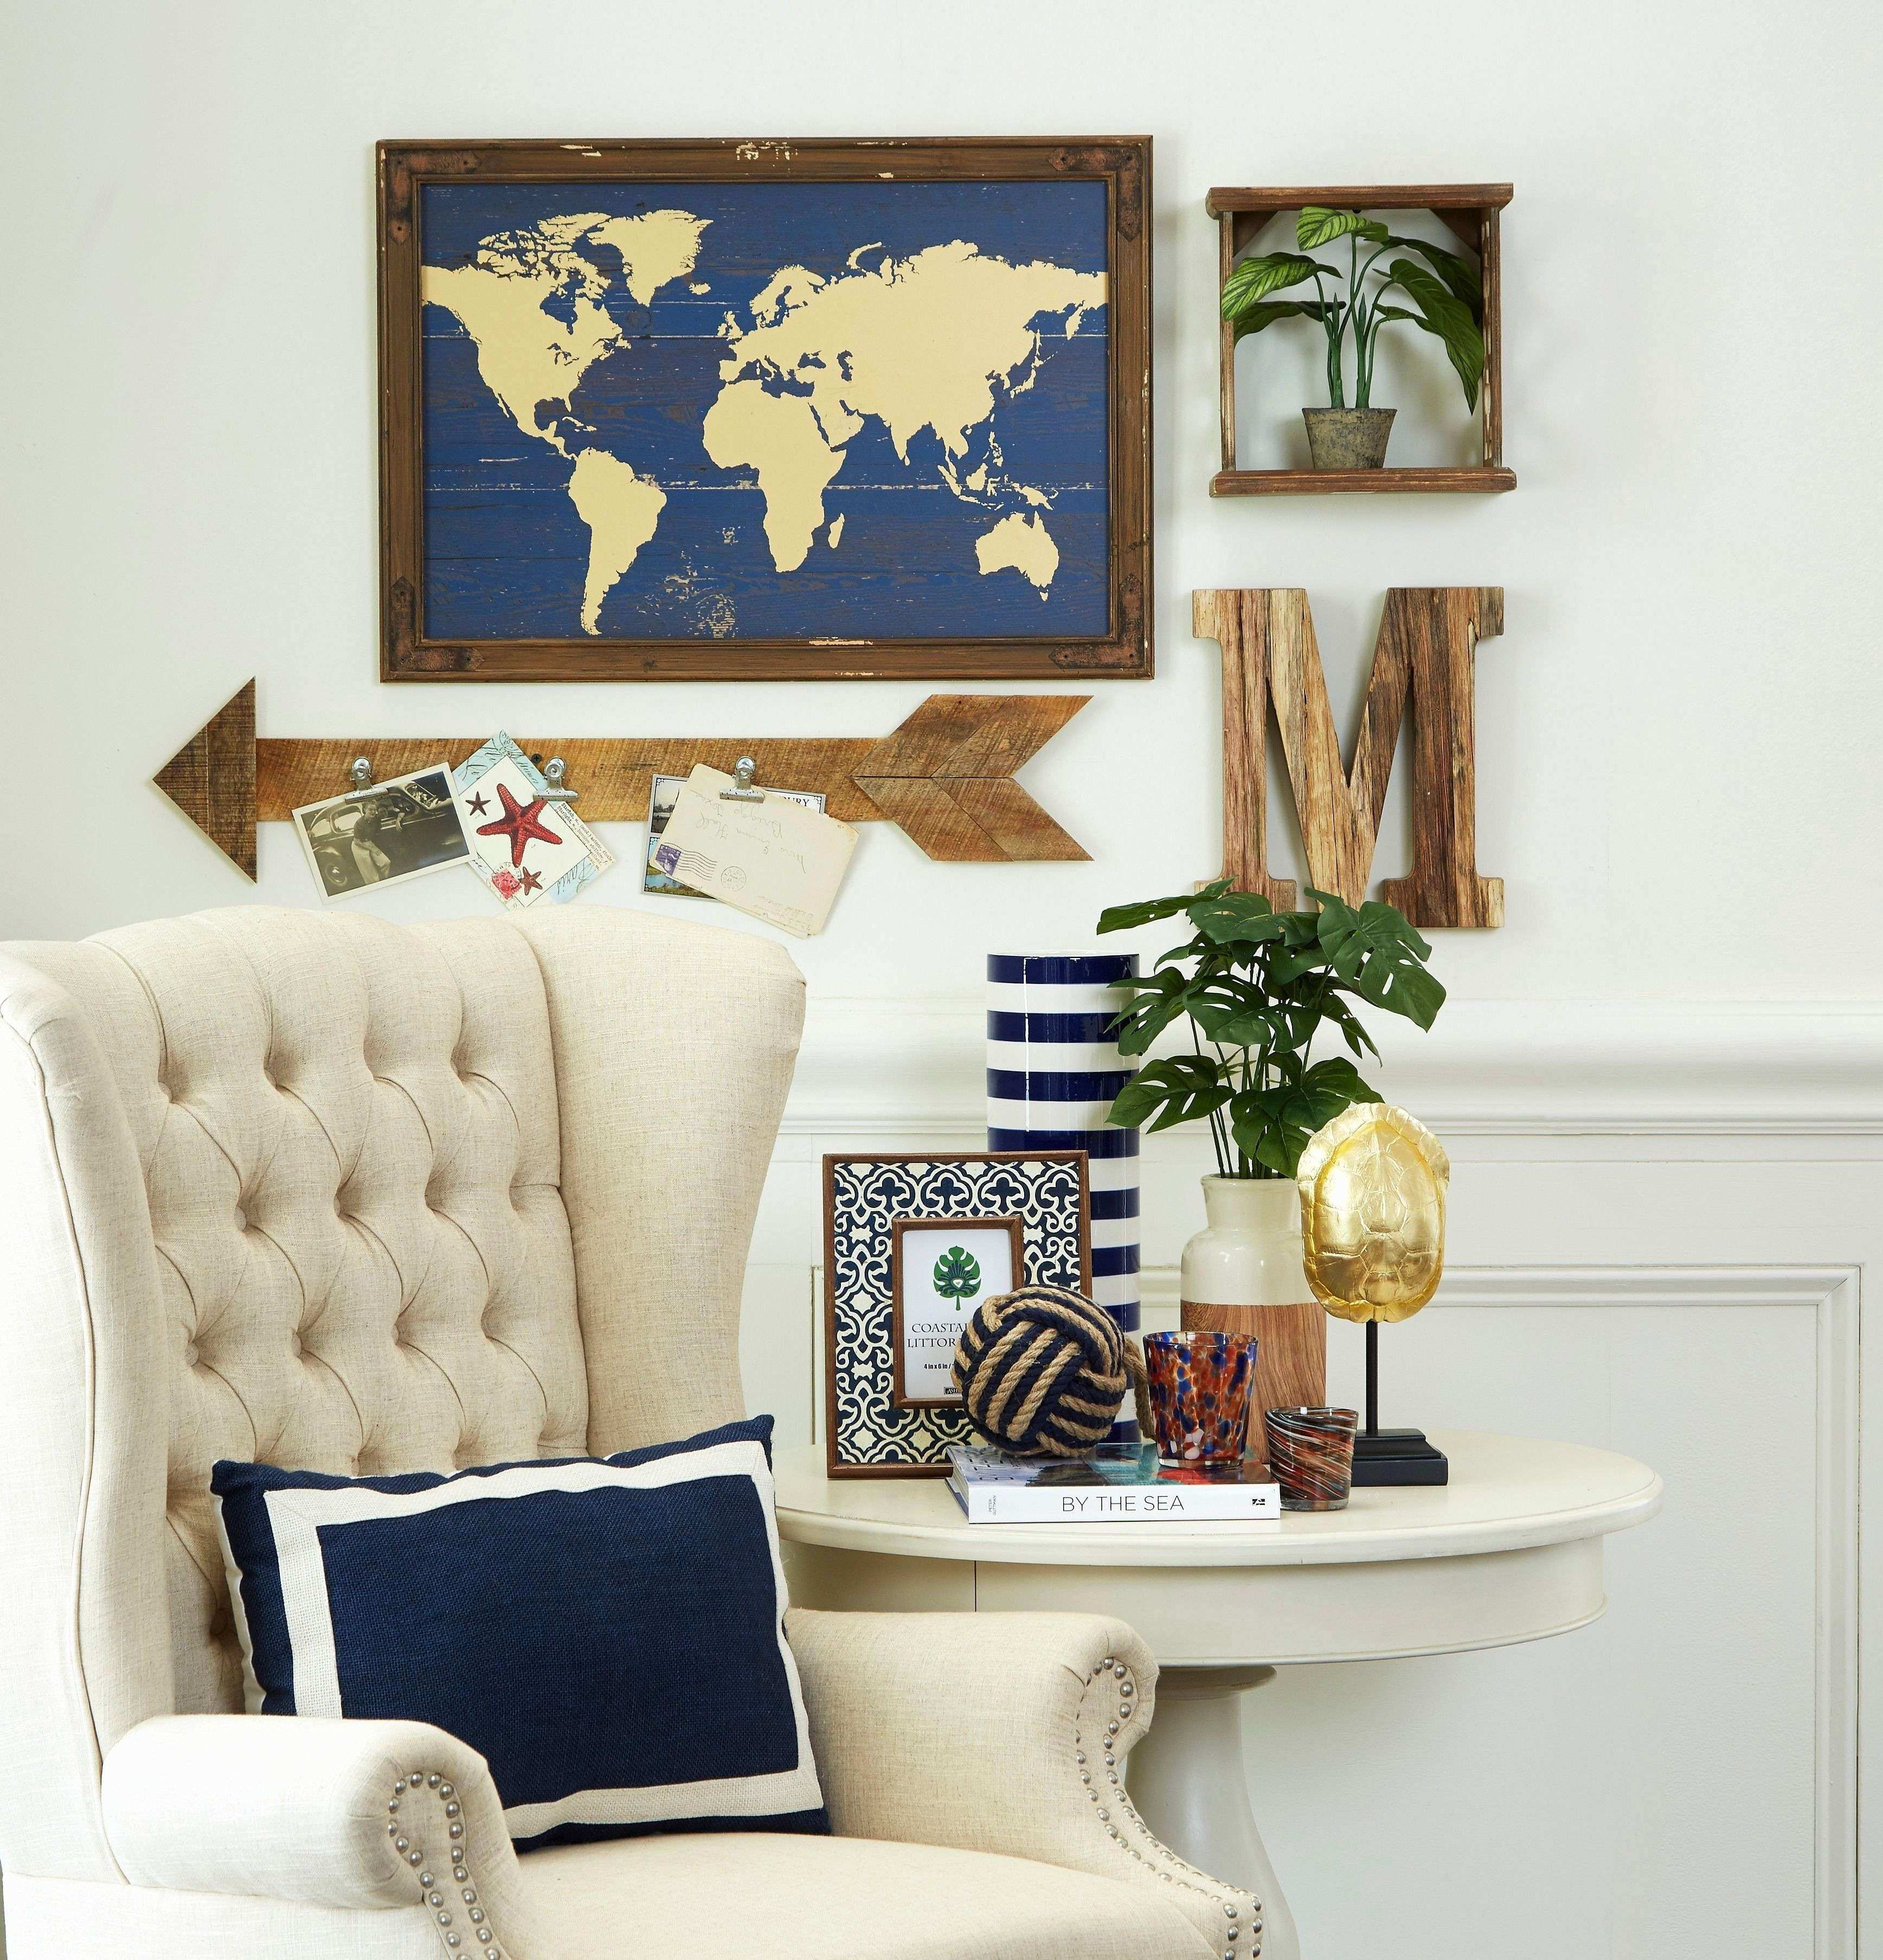 Rustic Home Interior Ideas Lovely Wall Decal Luxury 1 Kirkland Wall